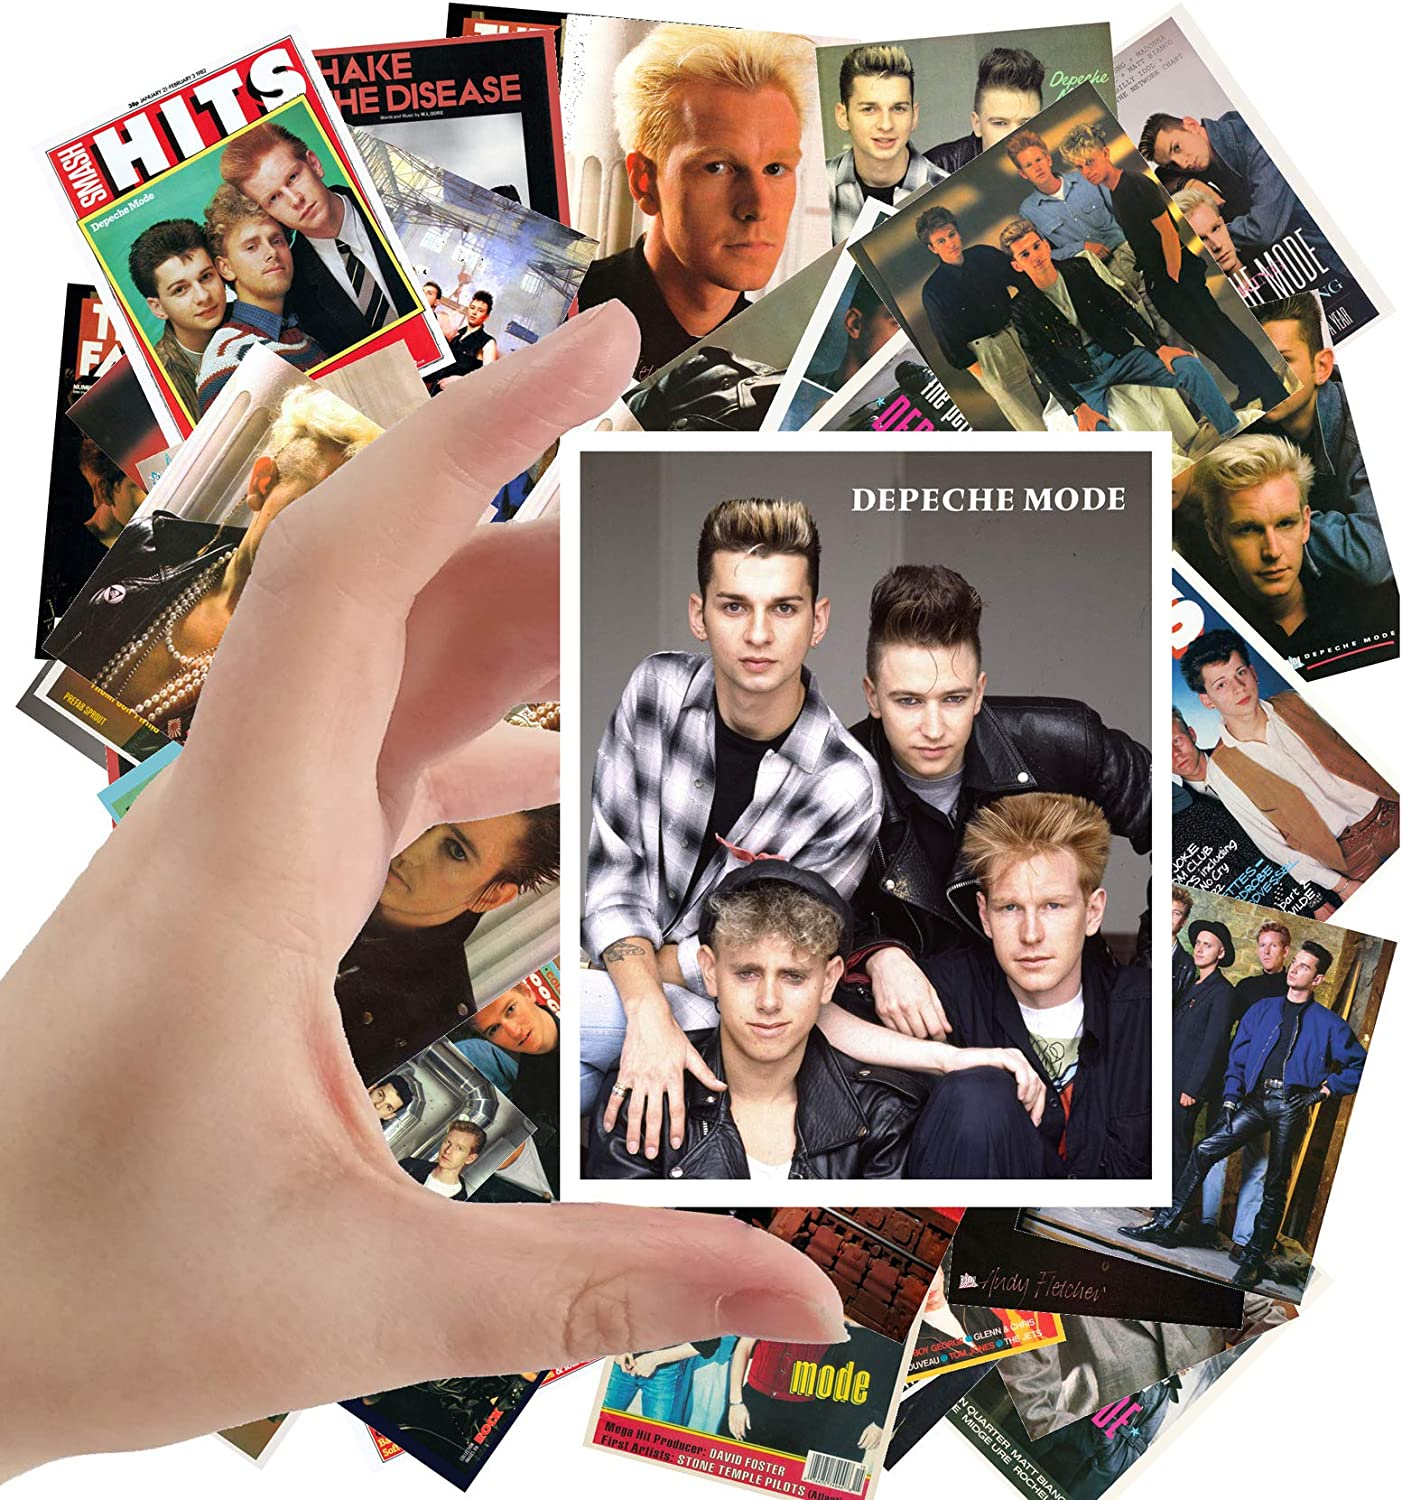 """Large Stickers (24pcs 2.5""""x3.5"""") DEPECHE MODE Electronic Music Posters Photos Vintage Magazine covers"""